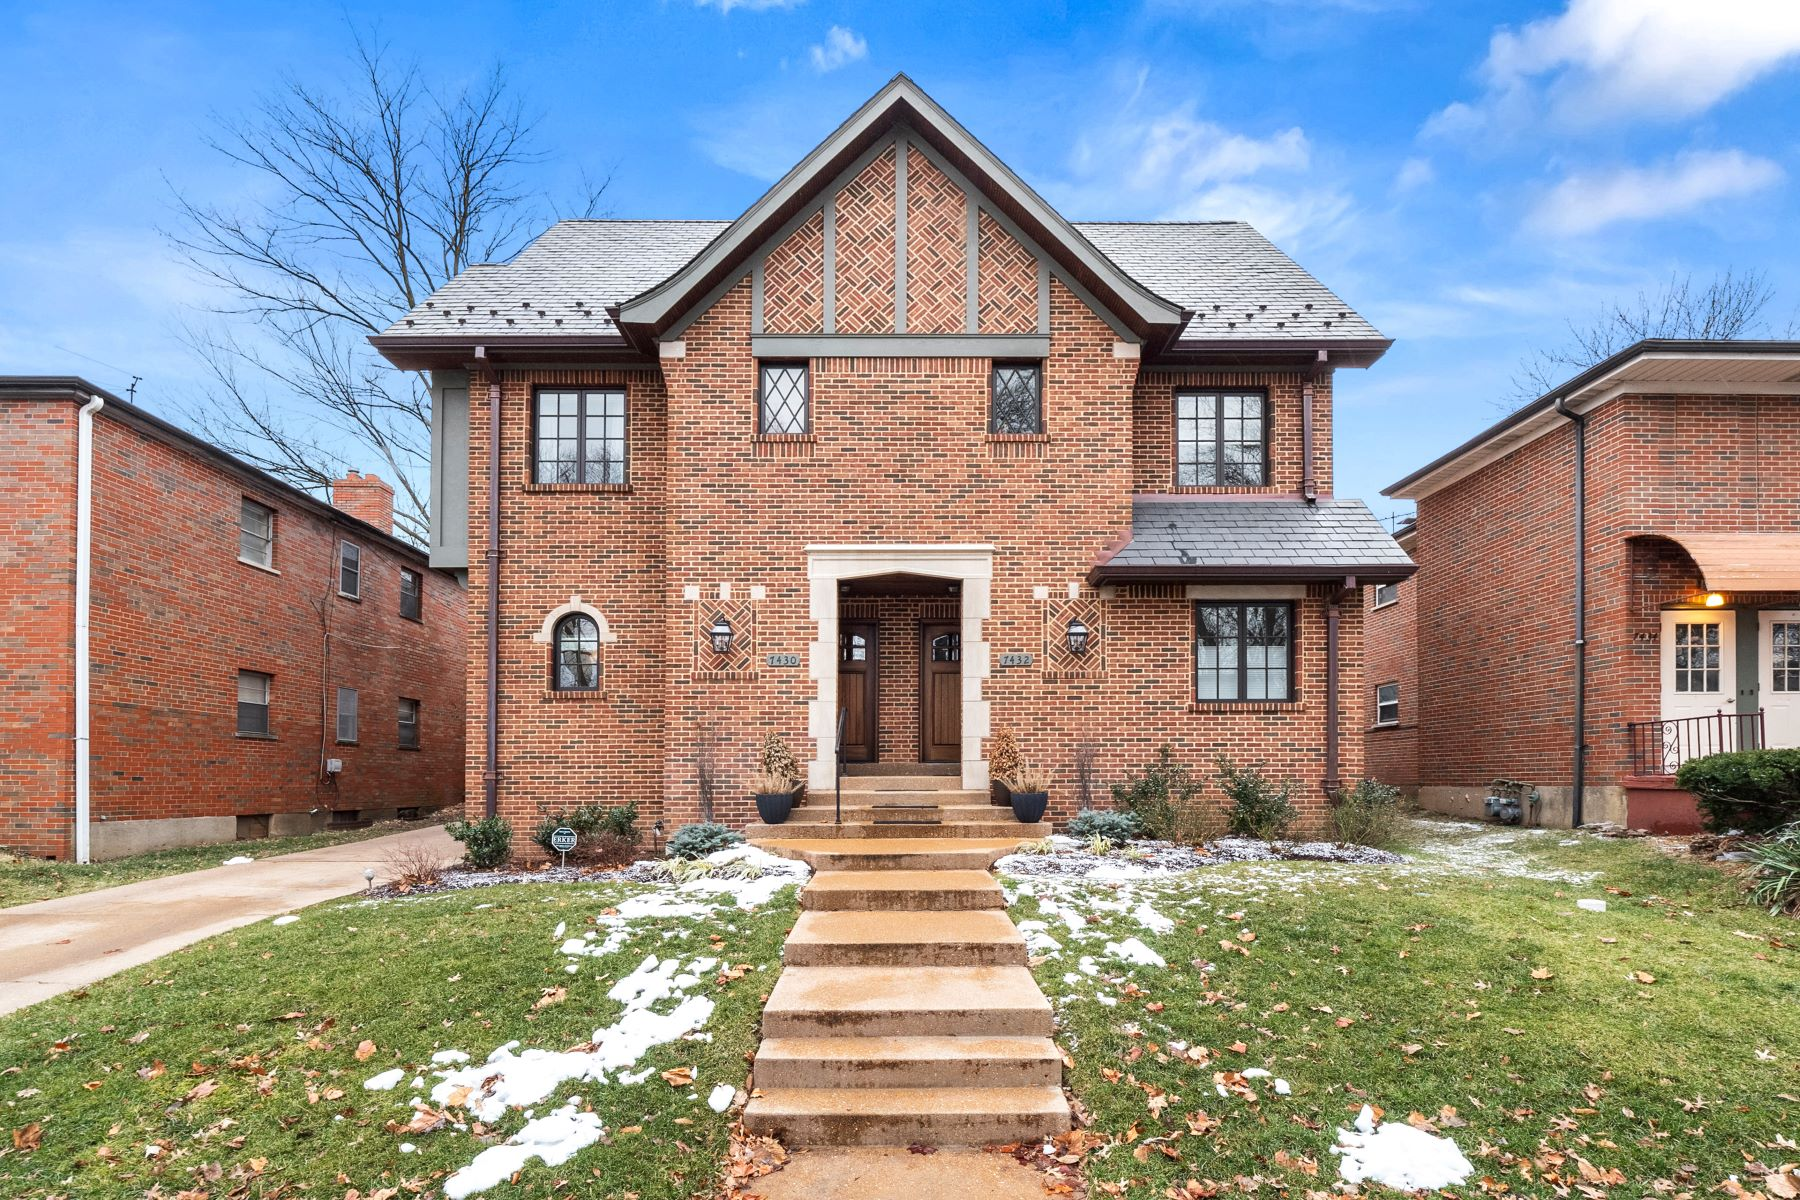 townhouses for Sale at 7430 Delmar Blvd 7430 Delmar Boulevard University City, Missouri 63130 United States